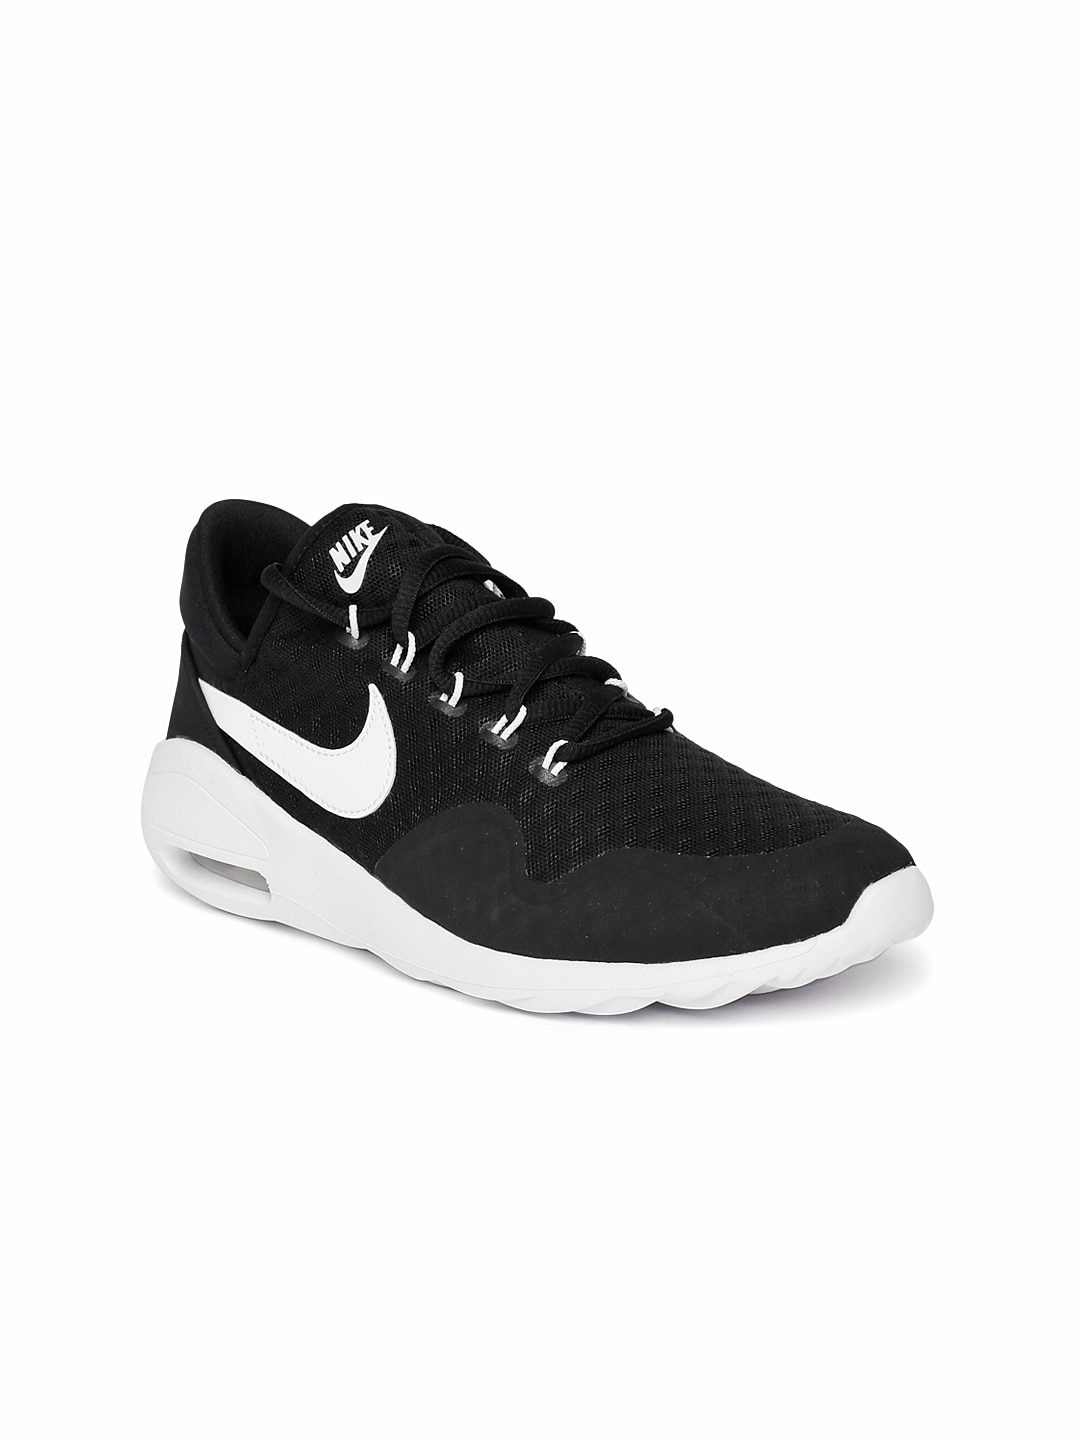 Nike - Shop for Nike Apparels Online in India  fd1288e74